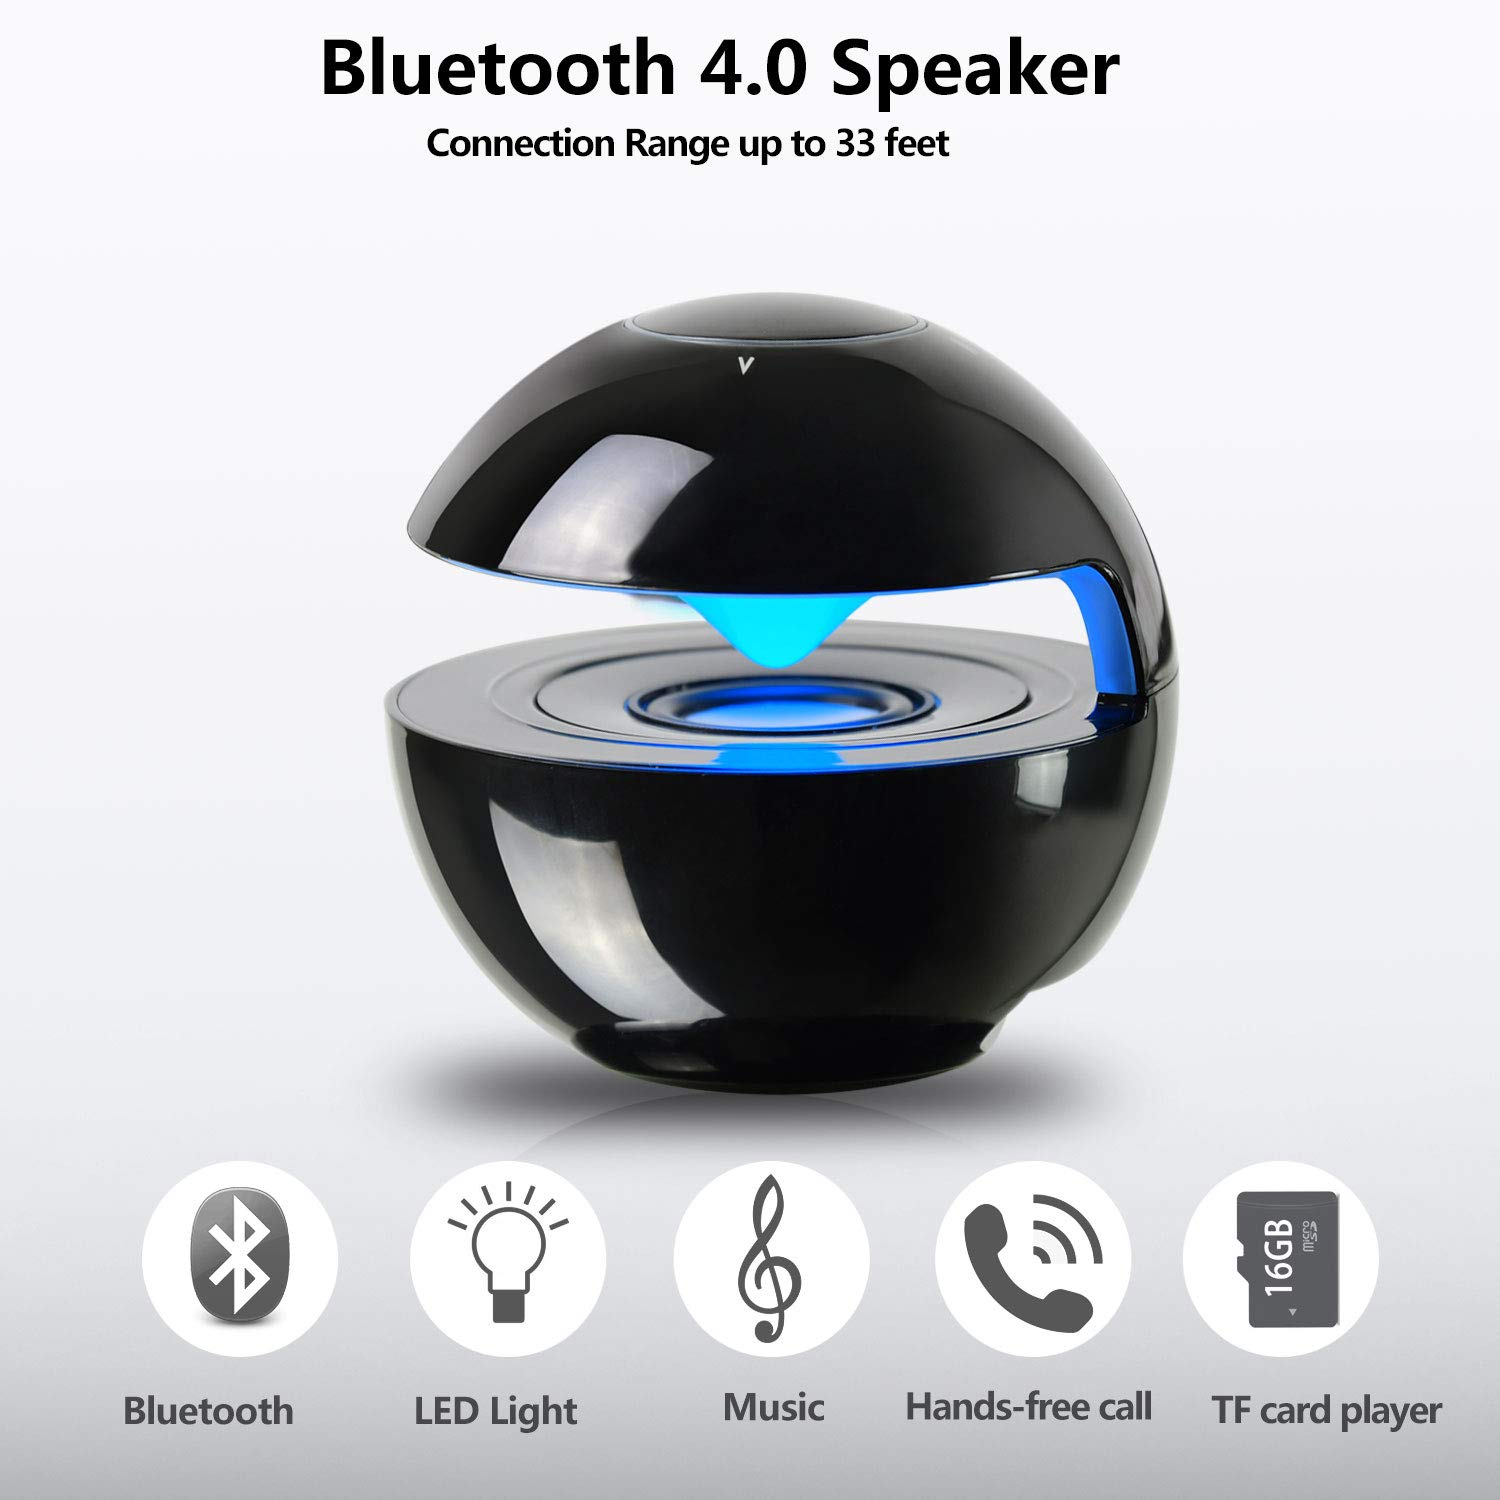 Adjustable Changeable Led Light,TF Card Slot Compatible for Smart Phone,iPad PC Tablet Grey Portable Bluetooth Speaker,Small Wireless Speaker with Superb HD Sound and Enhanced Bass